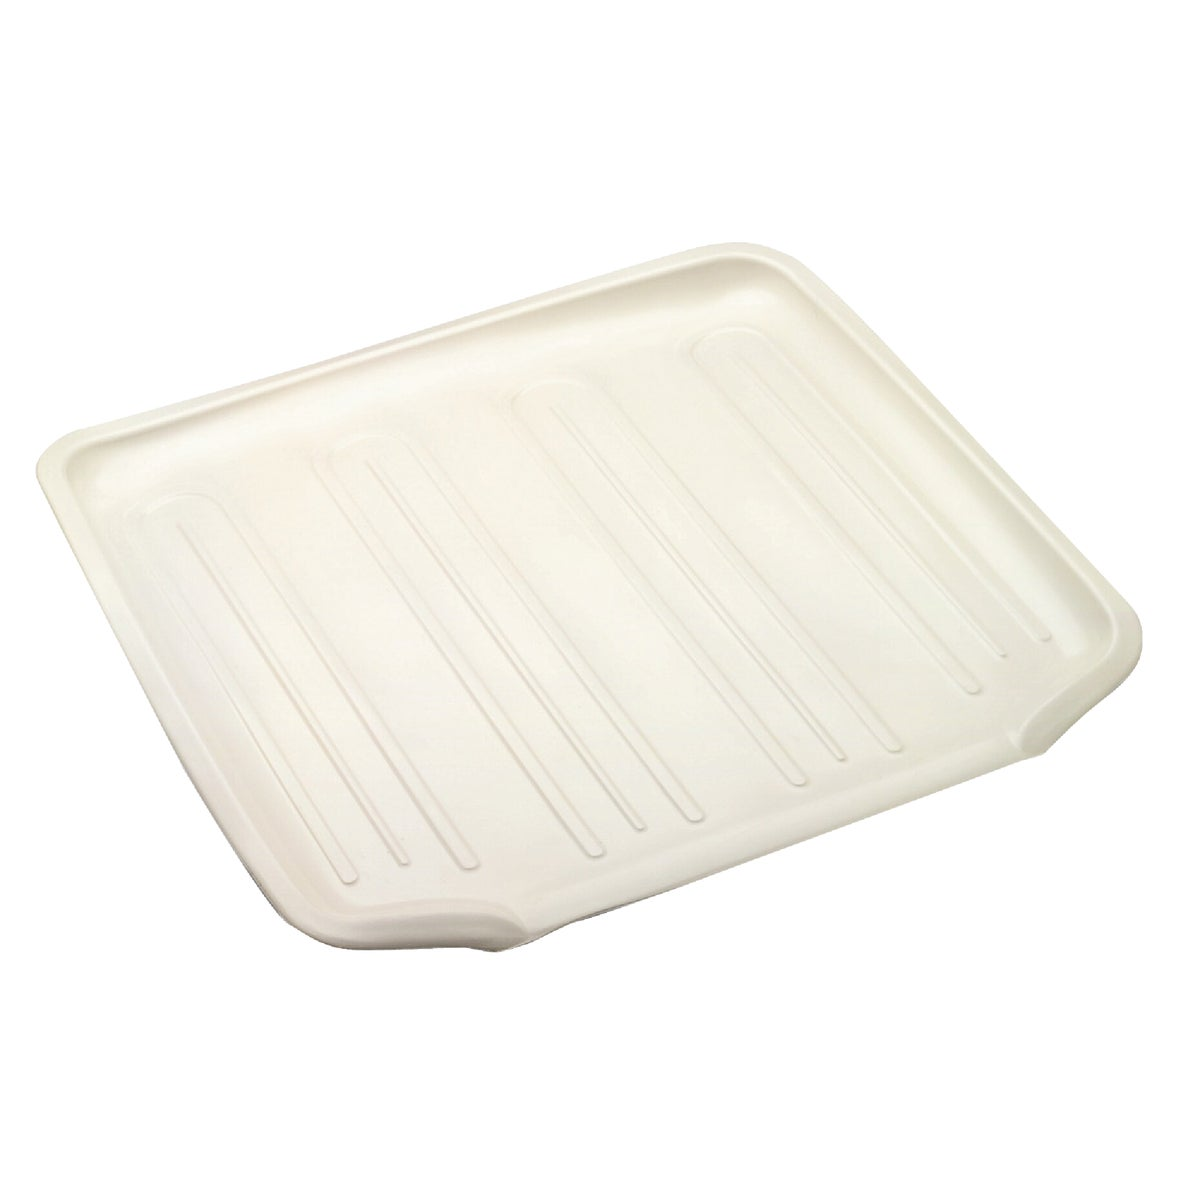 BISQUE DRAINER TRAY